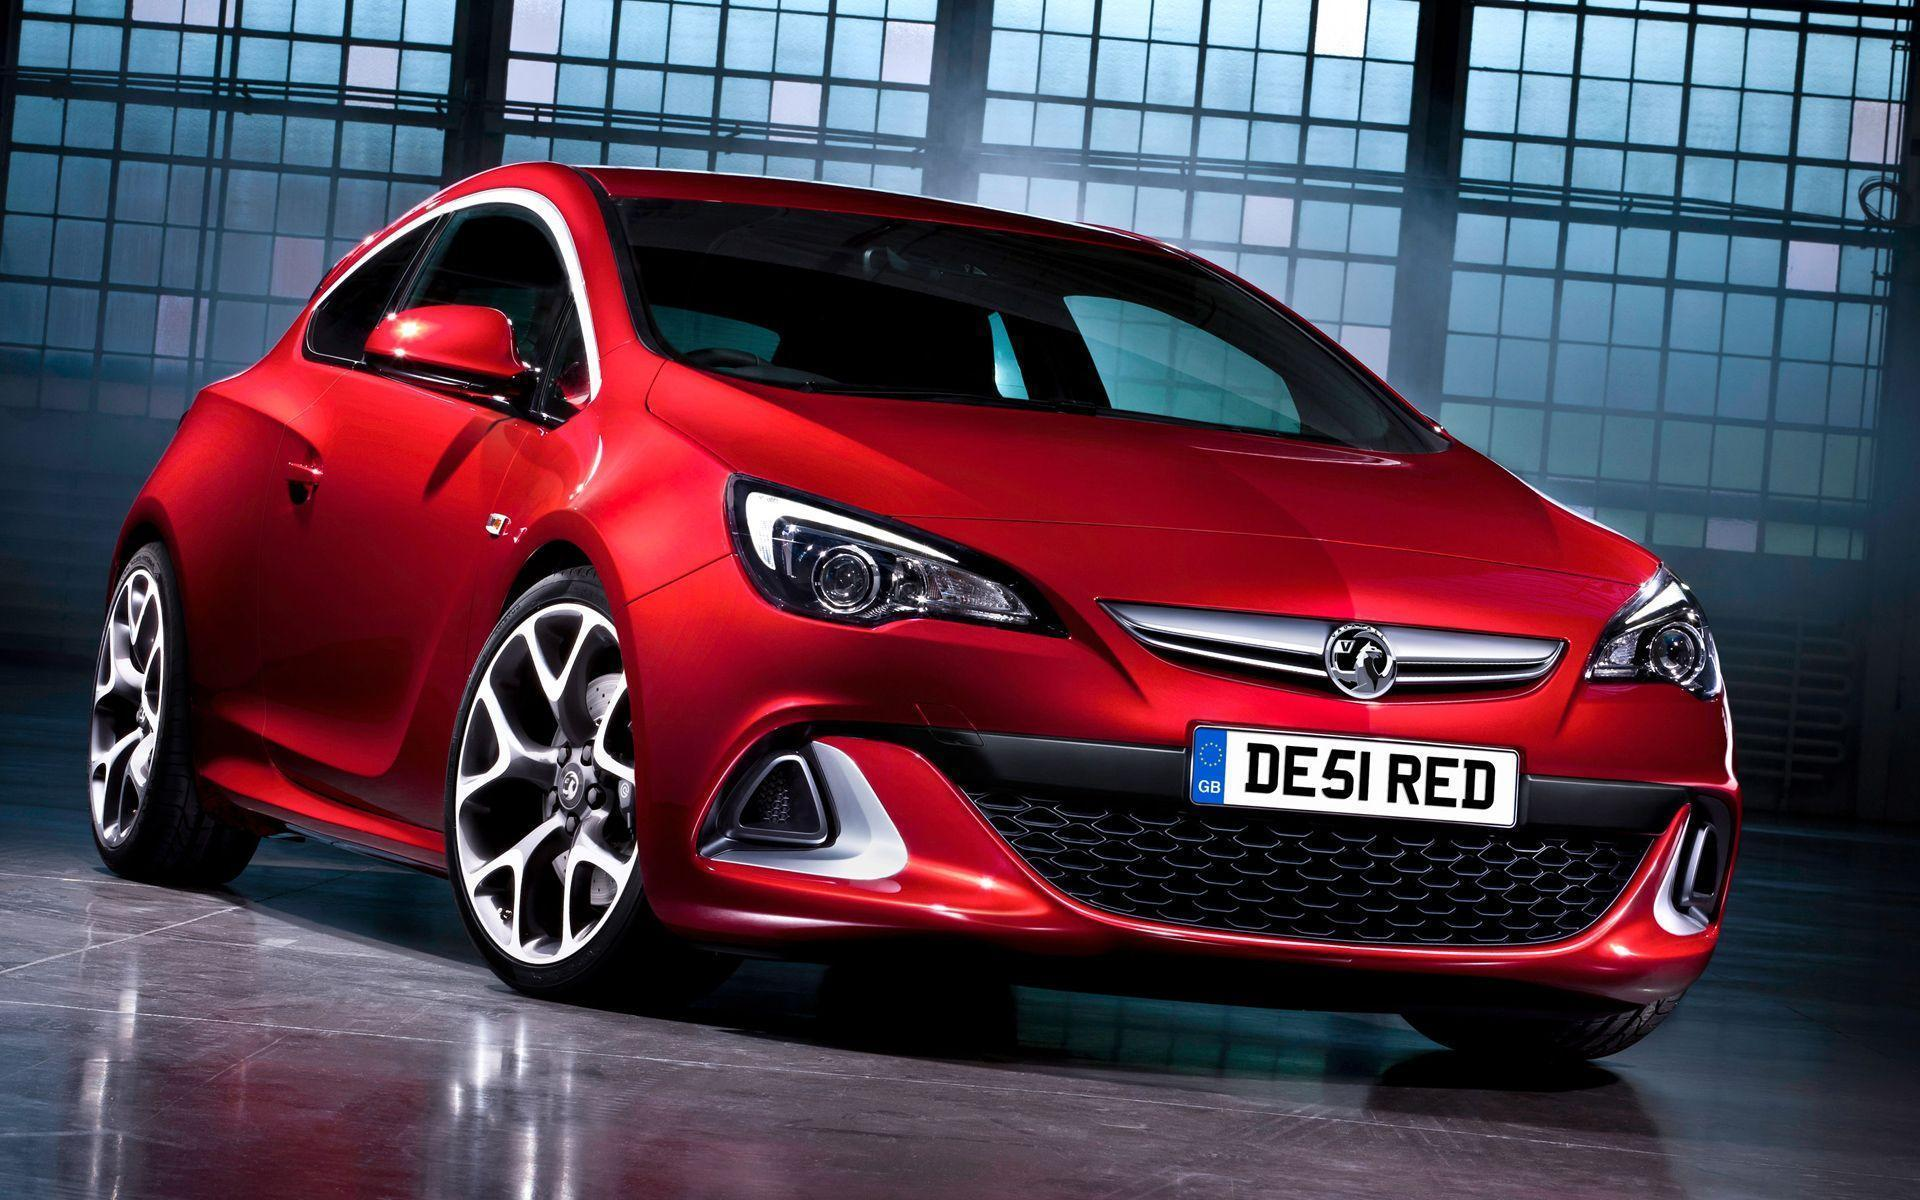 2012 Vauxhall Astra VXR Wallpaper | HD Car Wallpapers